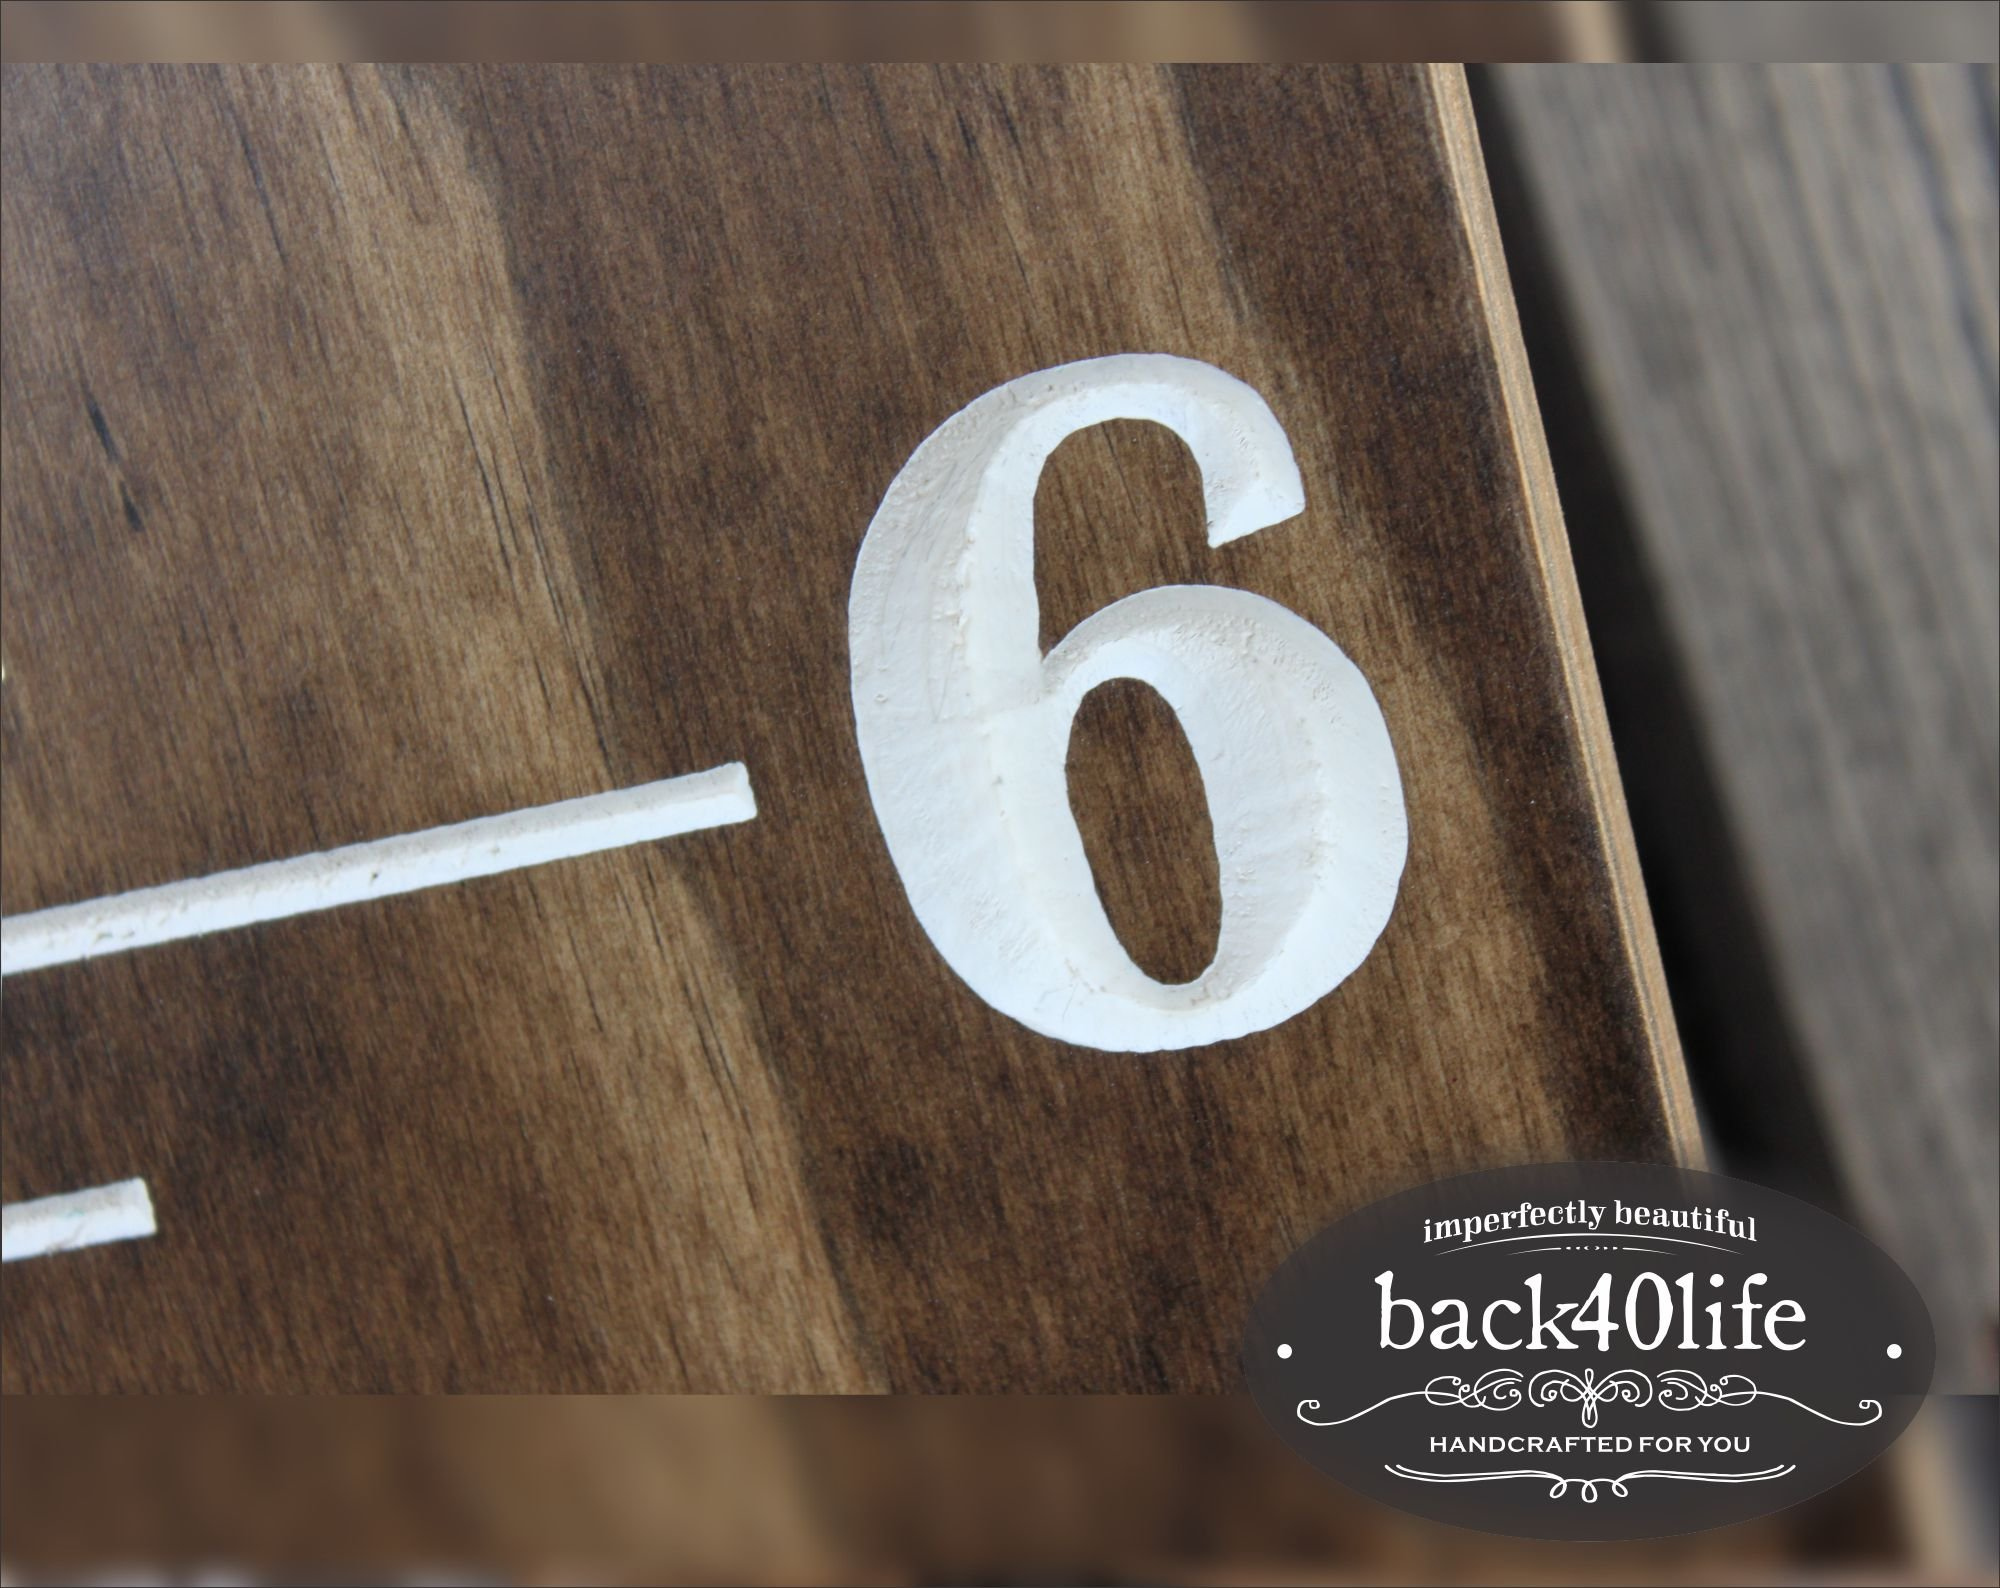 Back40Life | 60'' Premium Engraved Wooden Growth Height Chart Ruler - The Establishment (Dark Walnut + Antique White) by Back40Life (Image #2)